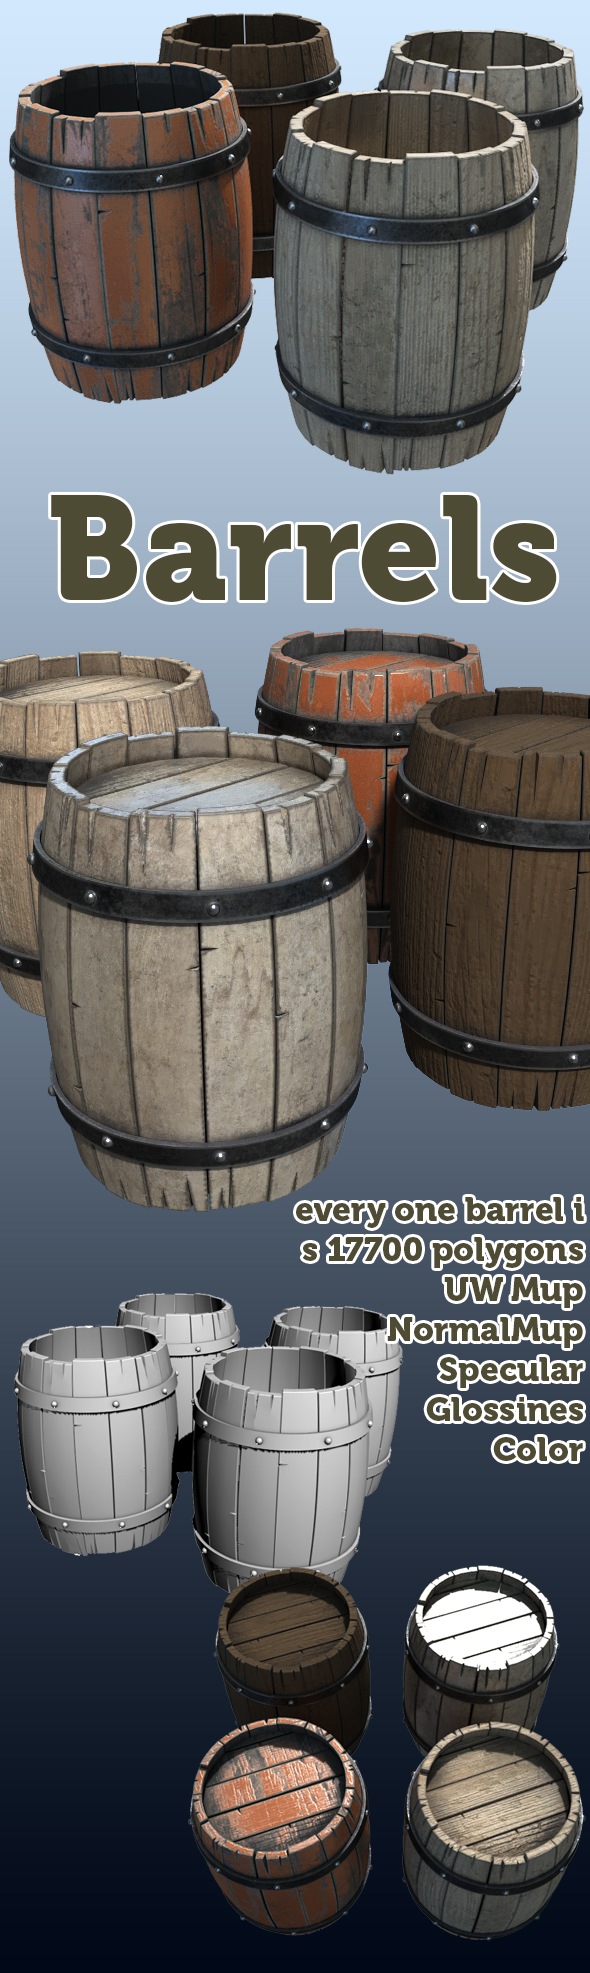 barrels low poly - 3DOcean Item for Sale